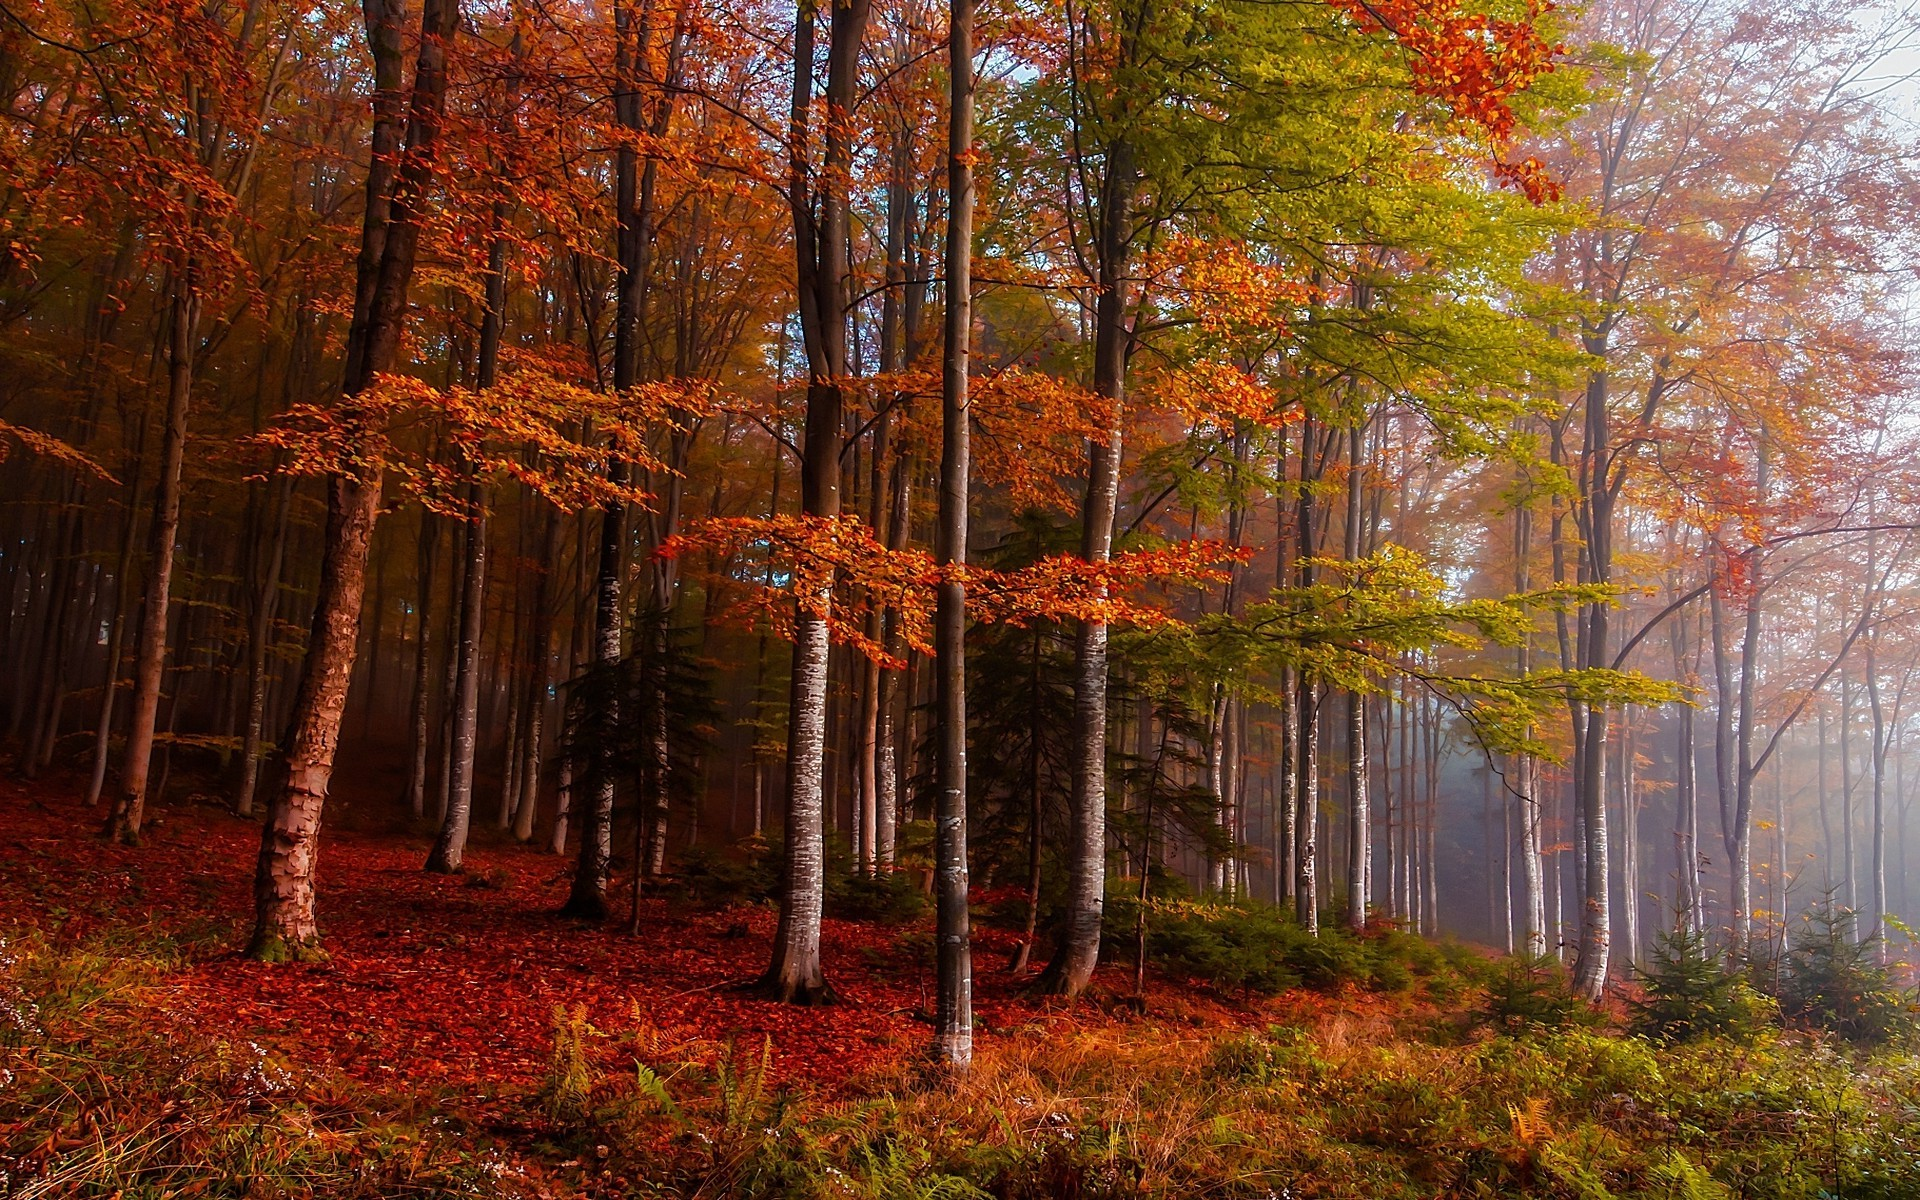 Fall Wallpaper 1600x900 Nature Landscape Fall Mist Forest Colorful Ferns